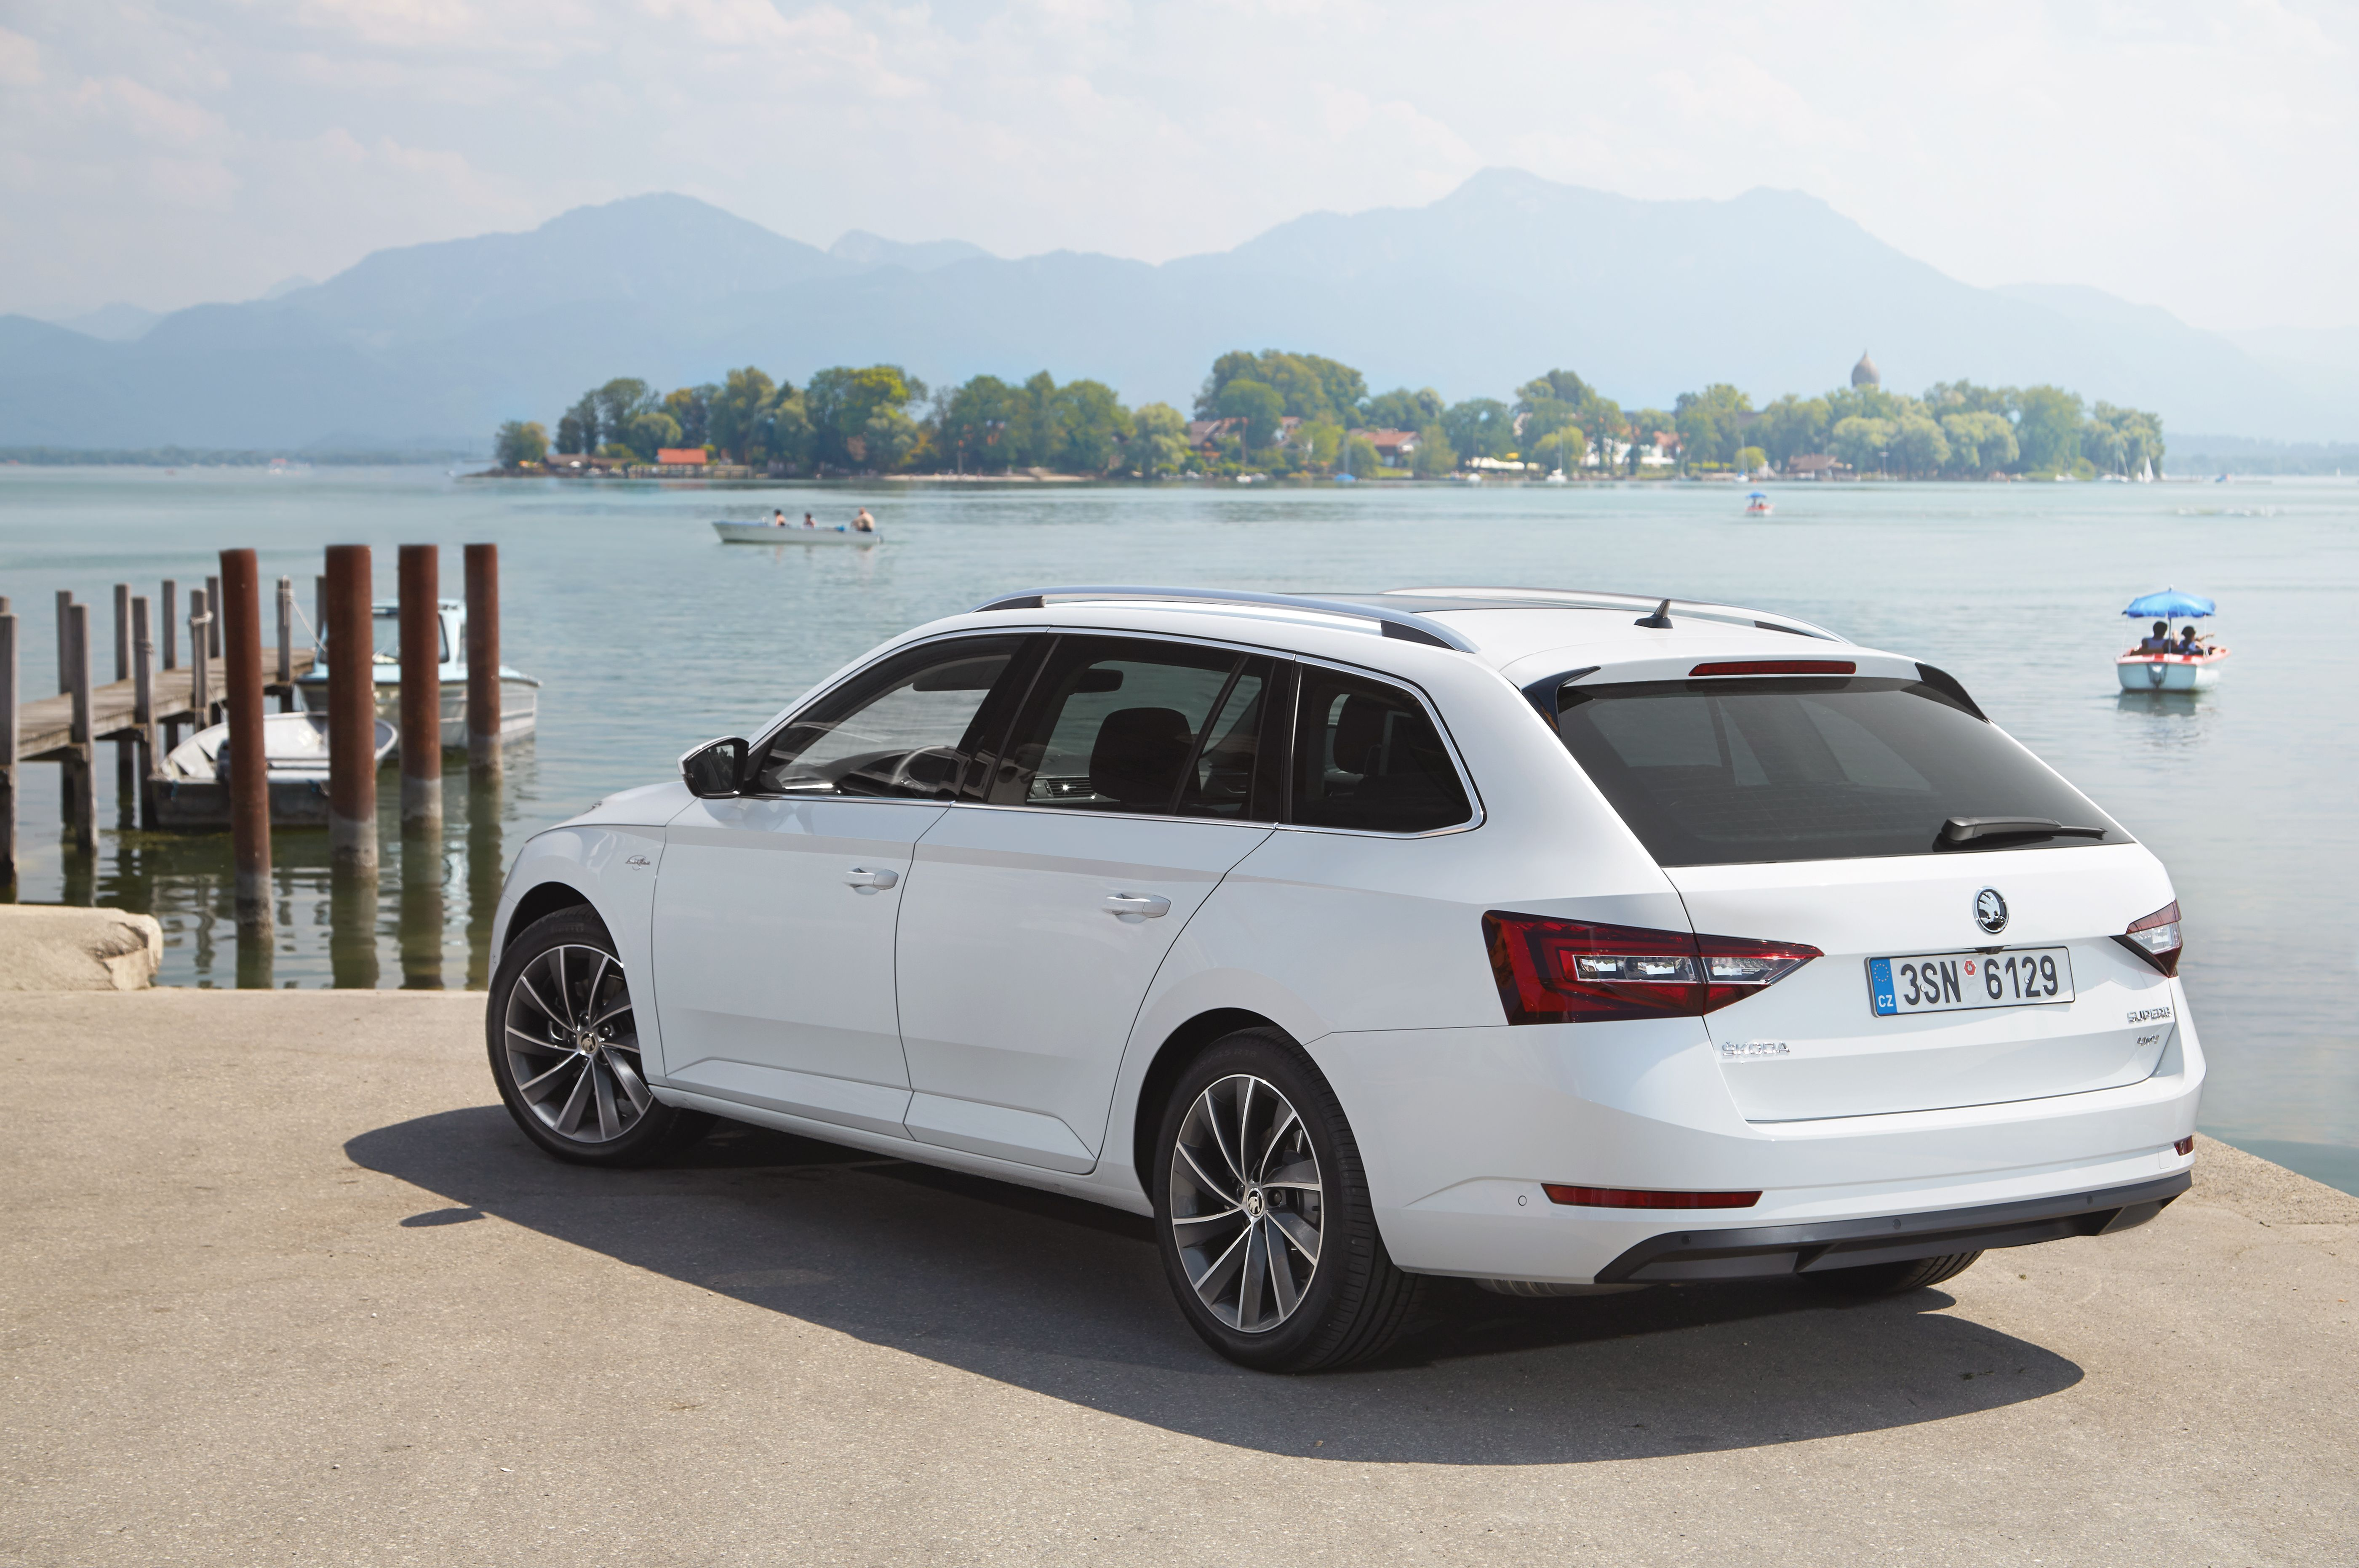 The new koda superb combi wows with a level of safety that has not previously been